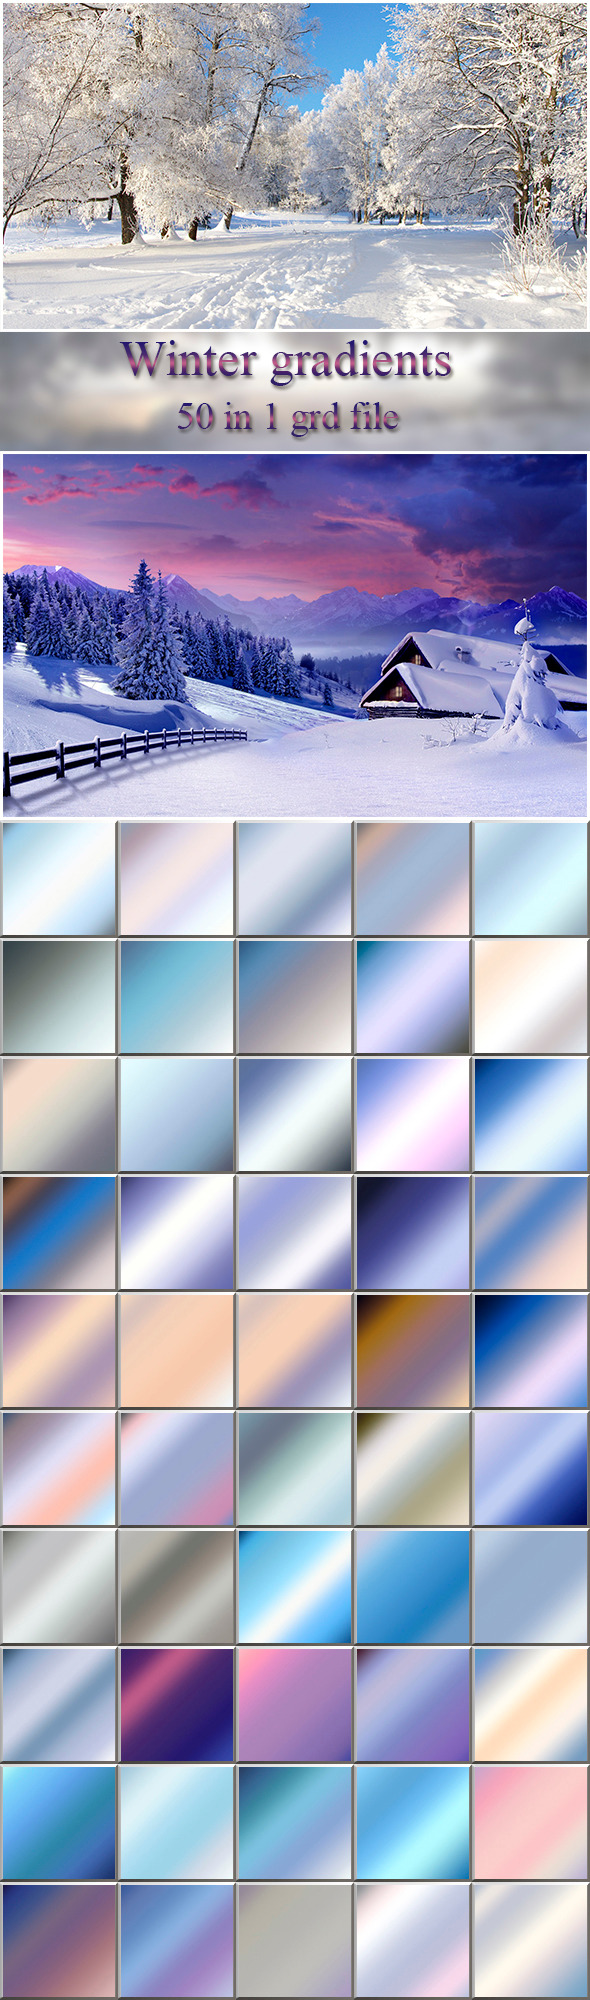 Winter Gradients - Photoshop Add-ons